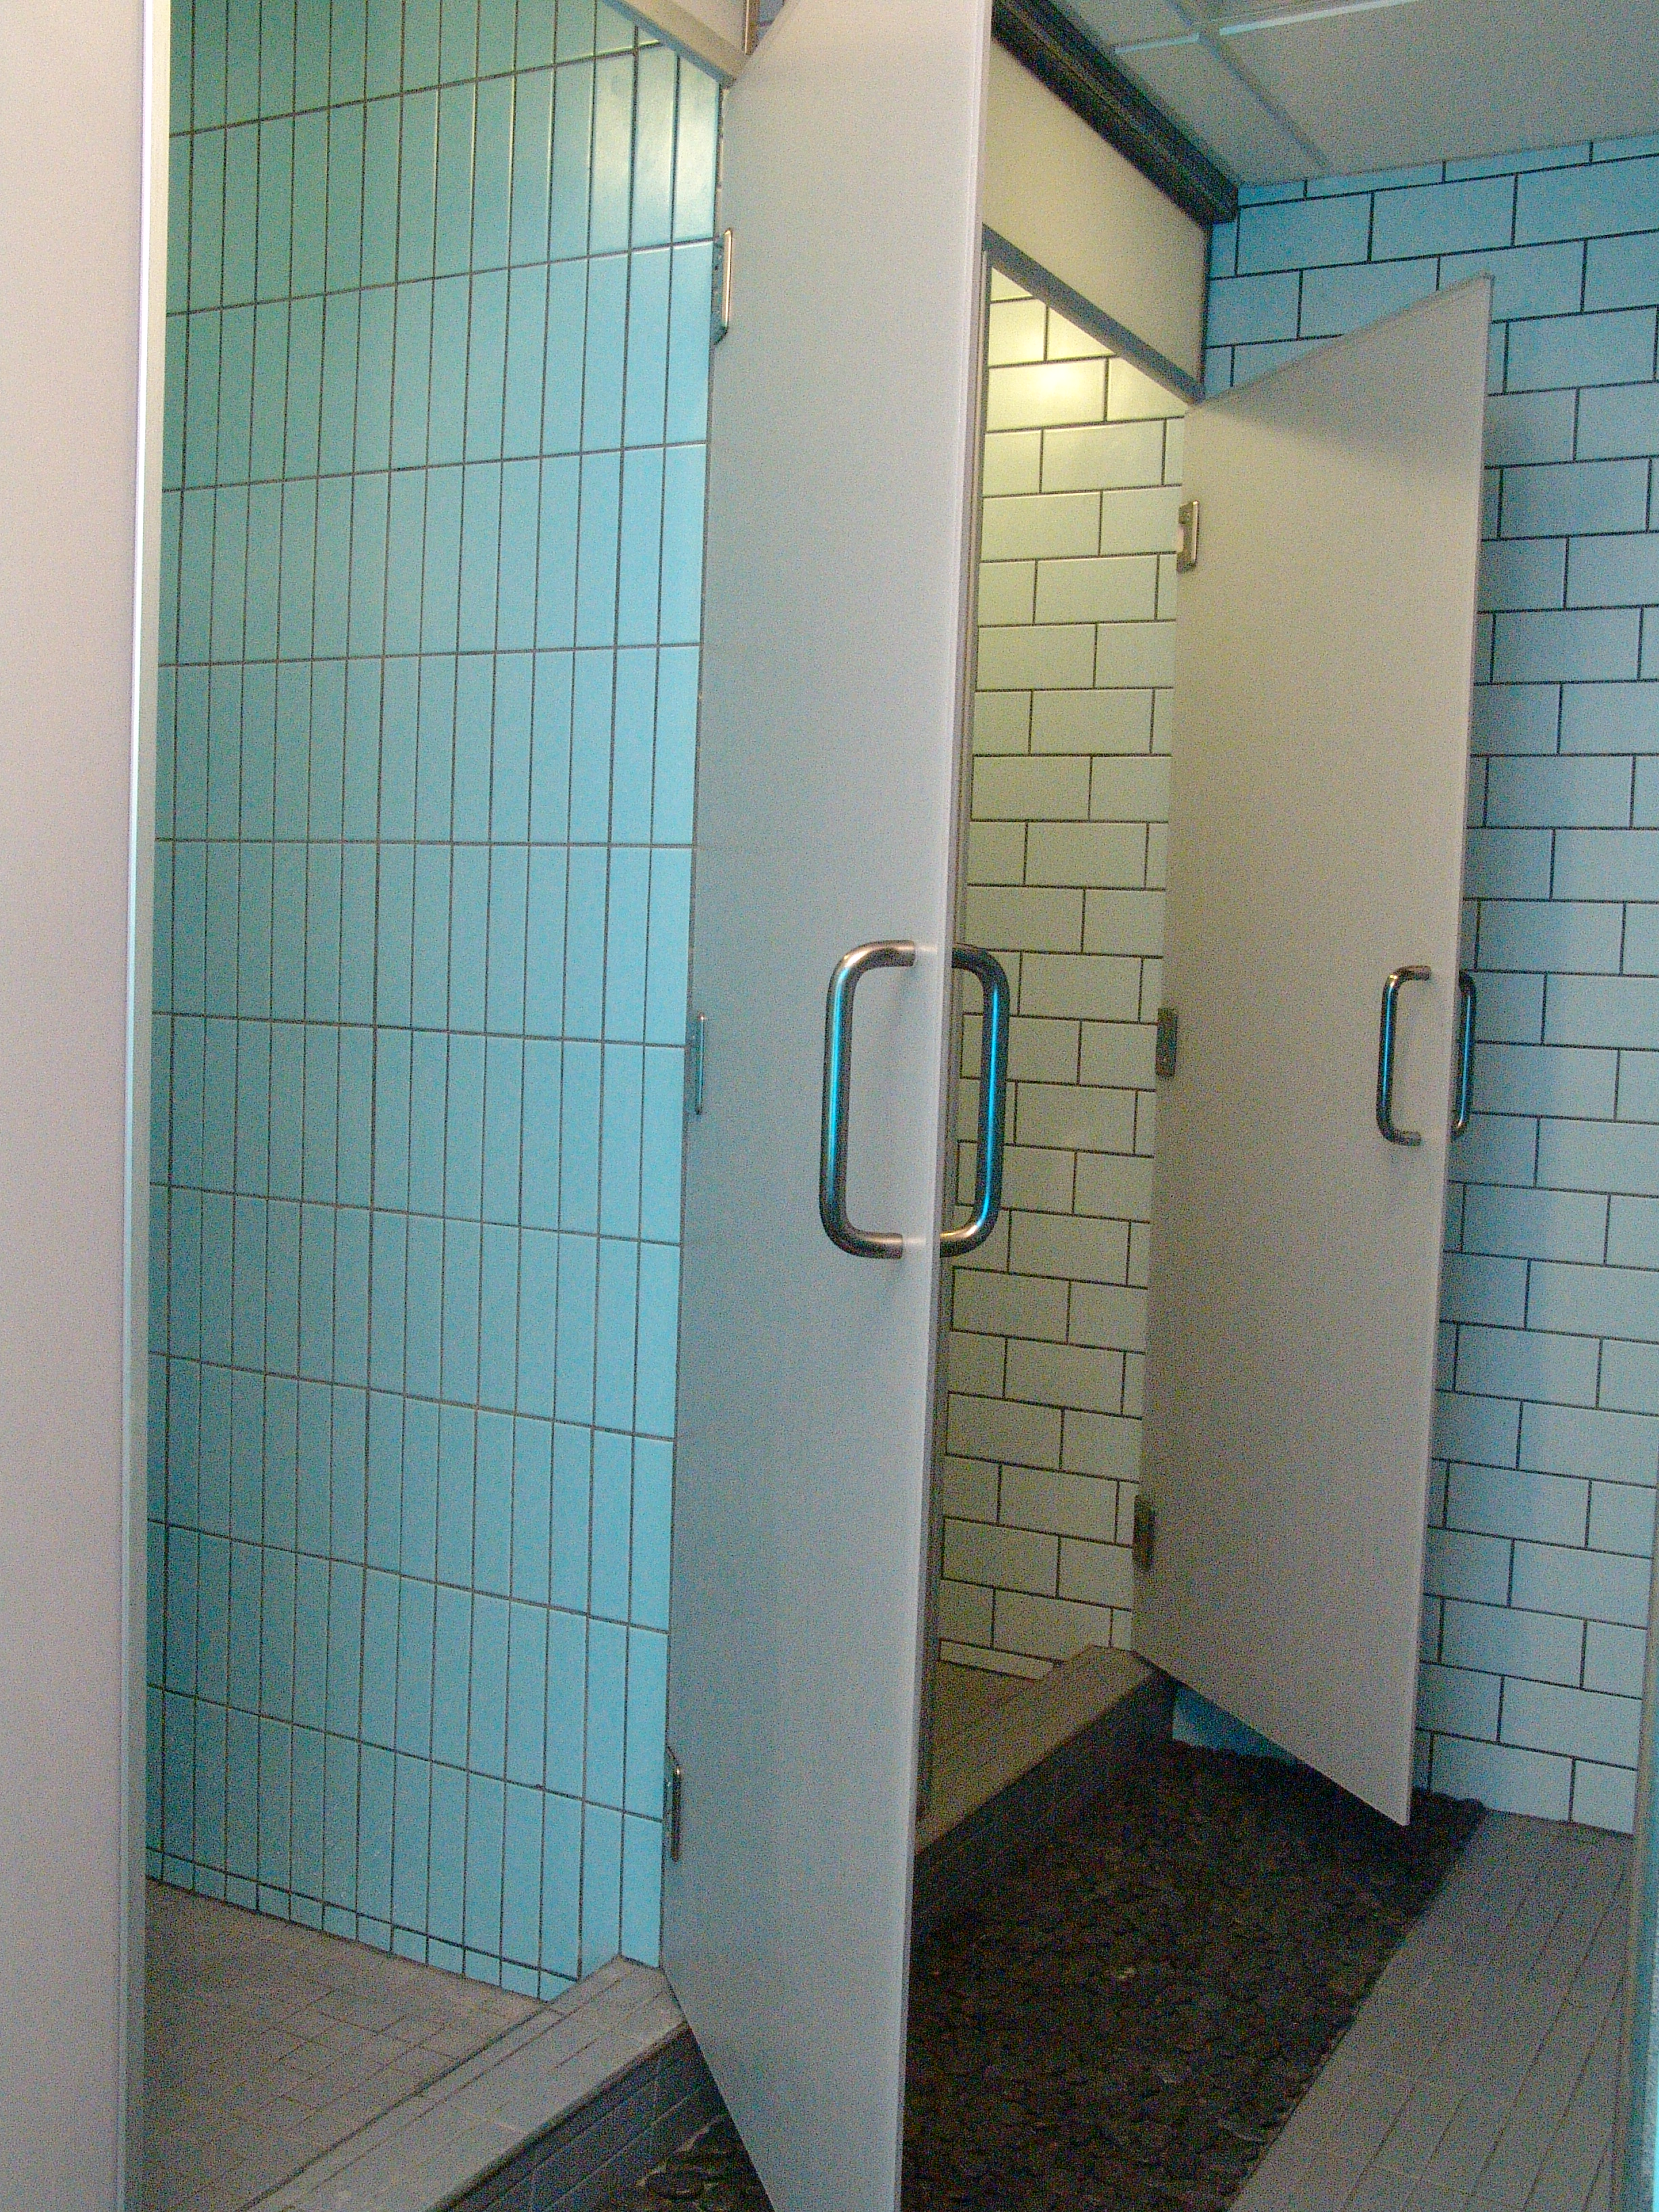 005-commercial tile in showers and walls of spa_3882.JPG